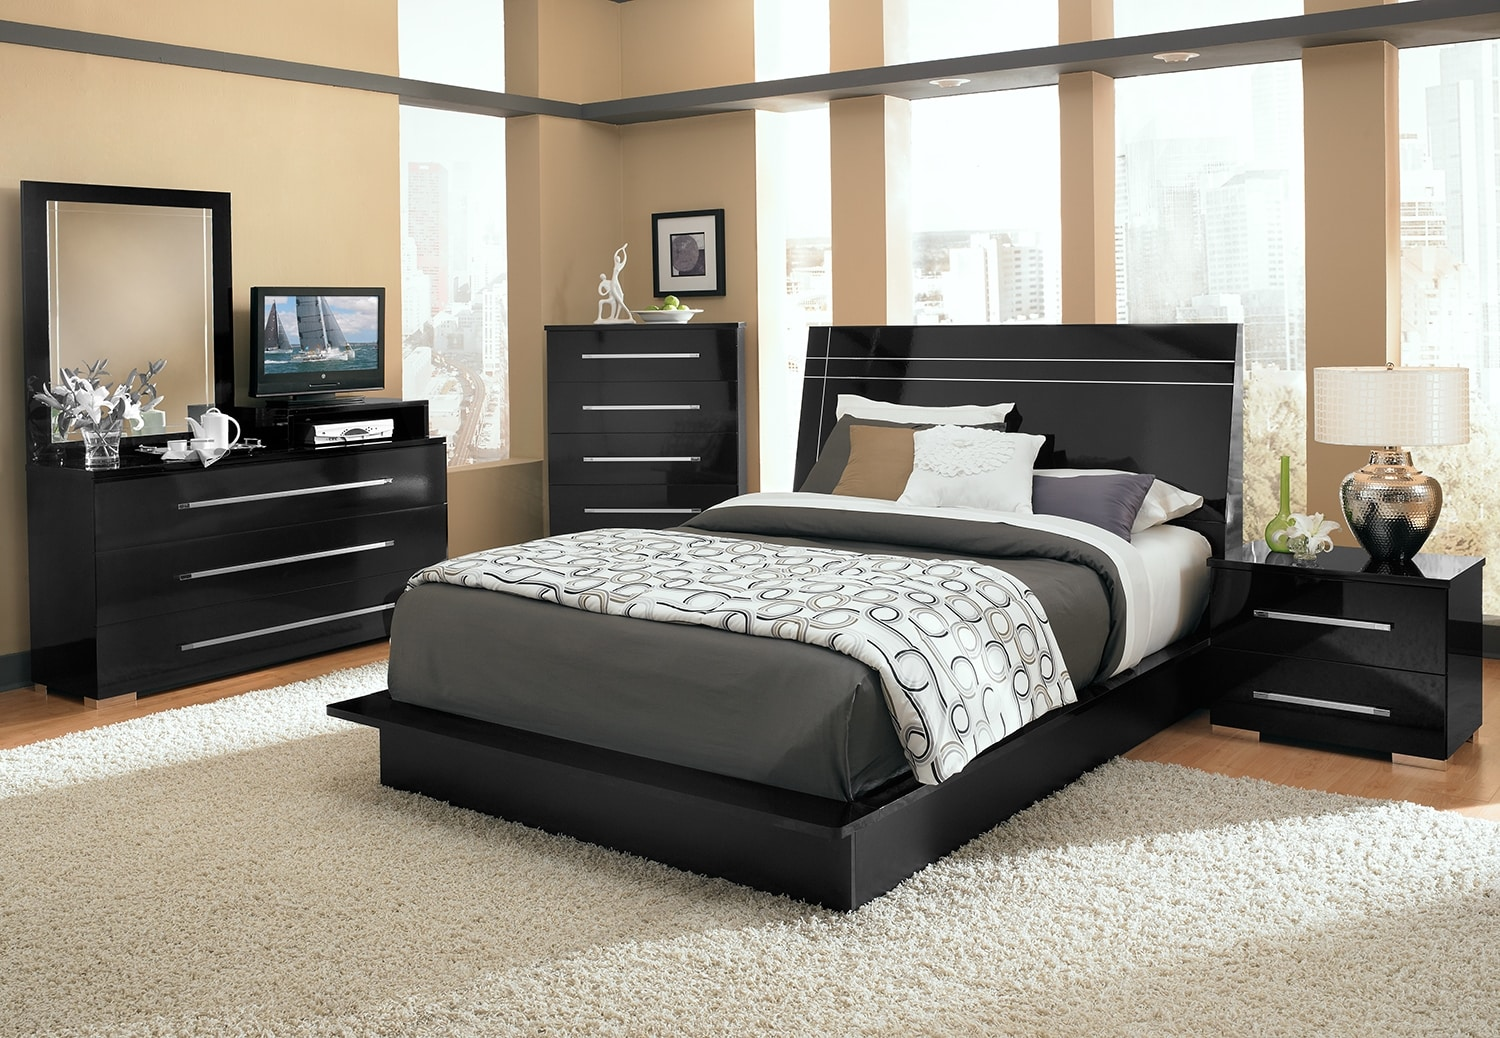 Bedroom Furniture - Dimora 7-Piece King Panel Bedroom with Media Dresser - Black